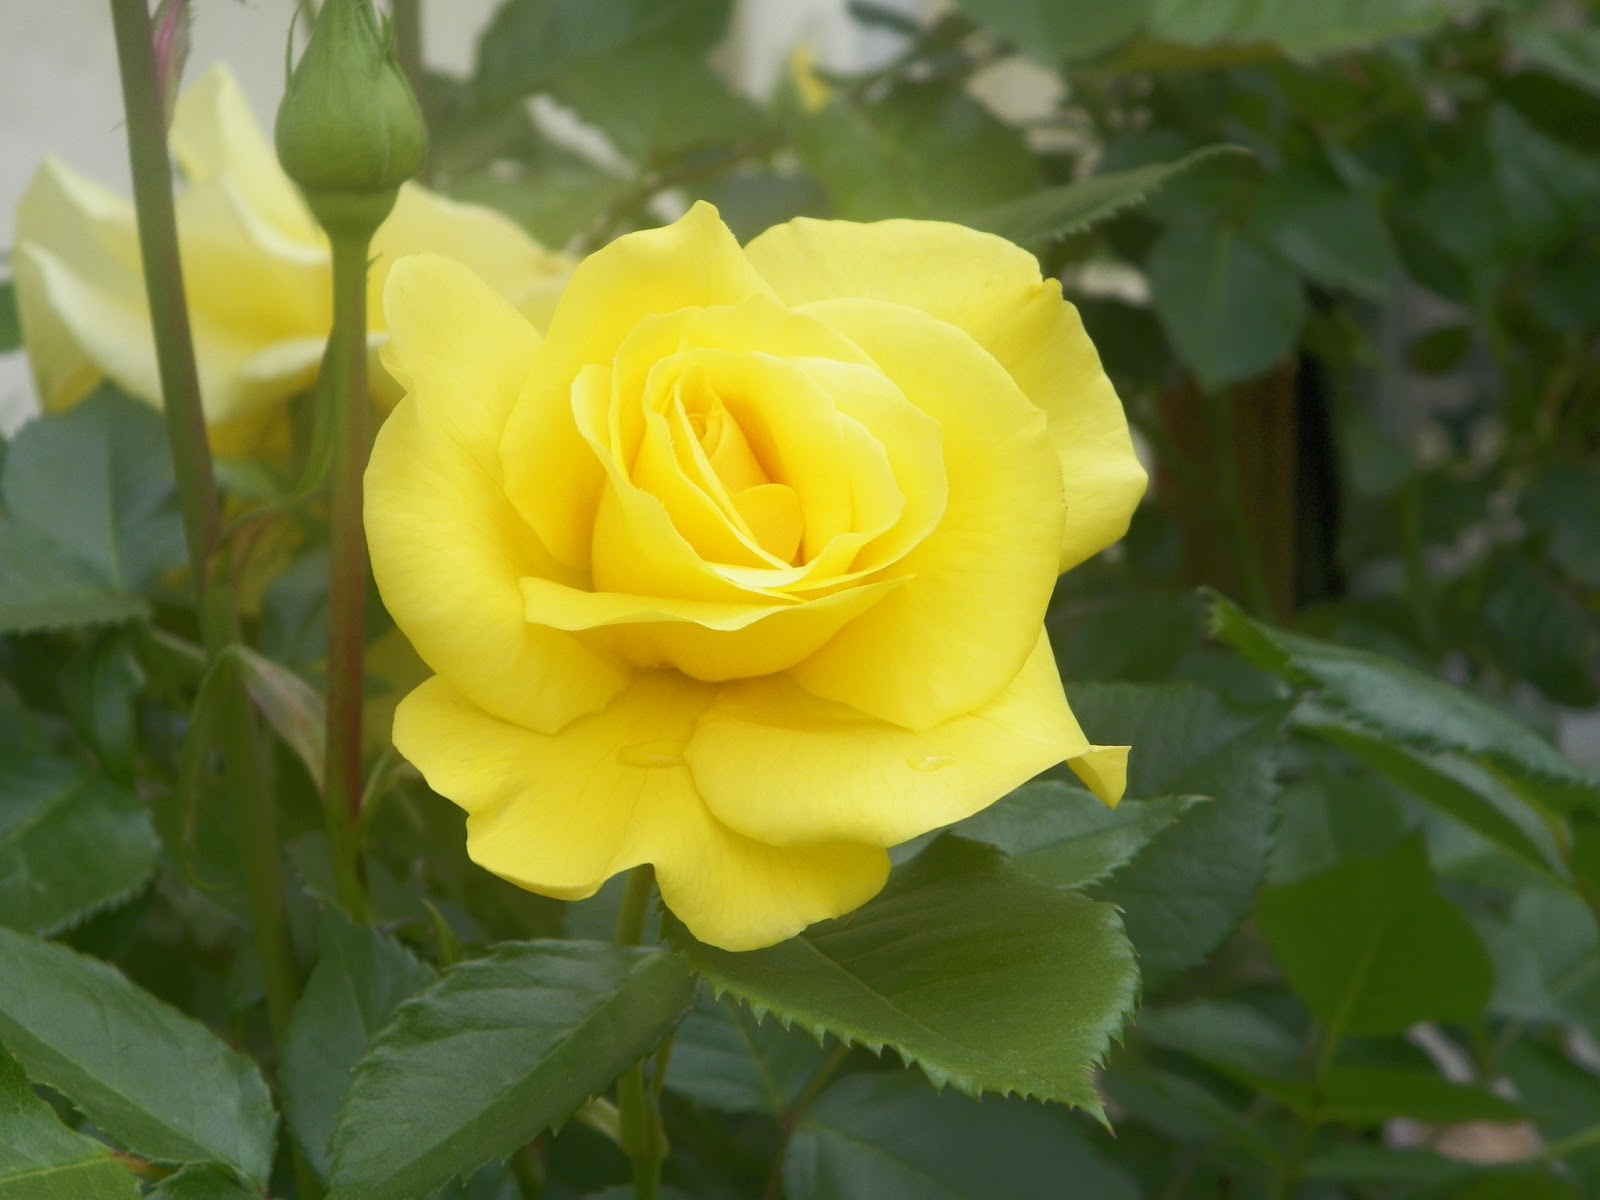 We have a yellow rose bush that is HUGE! It's not just any rose bush ...